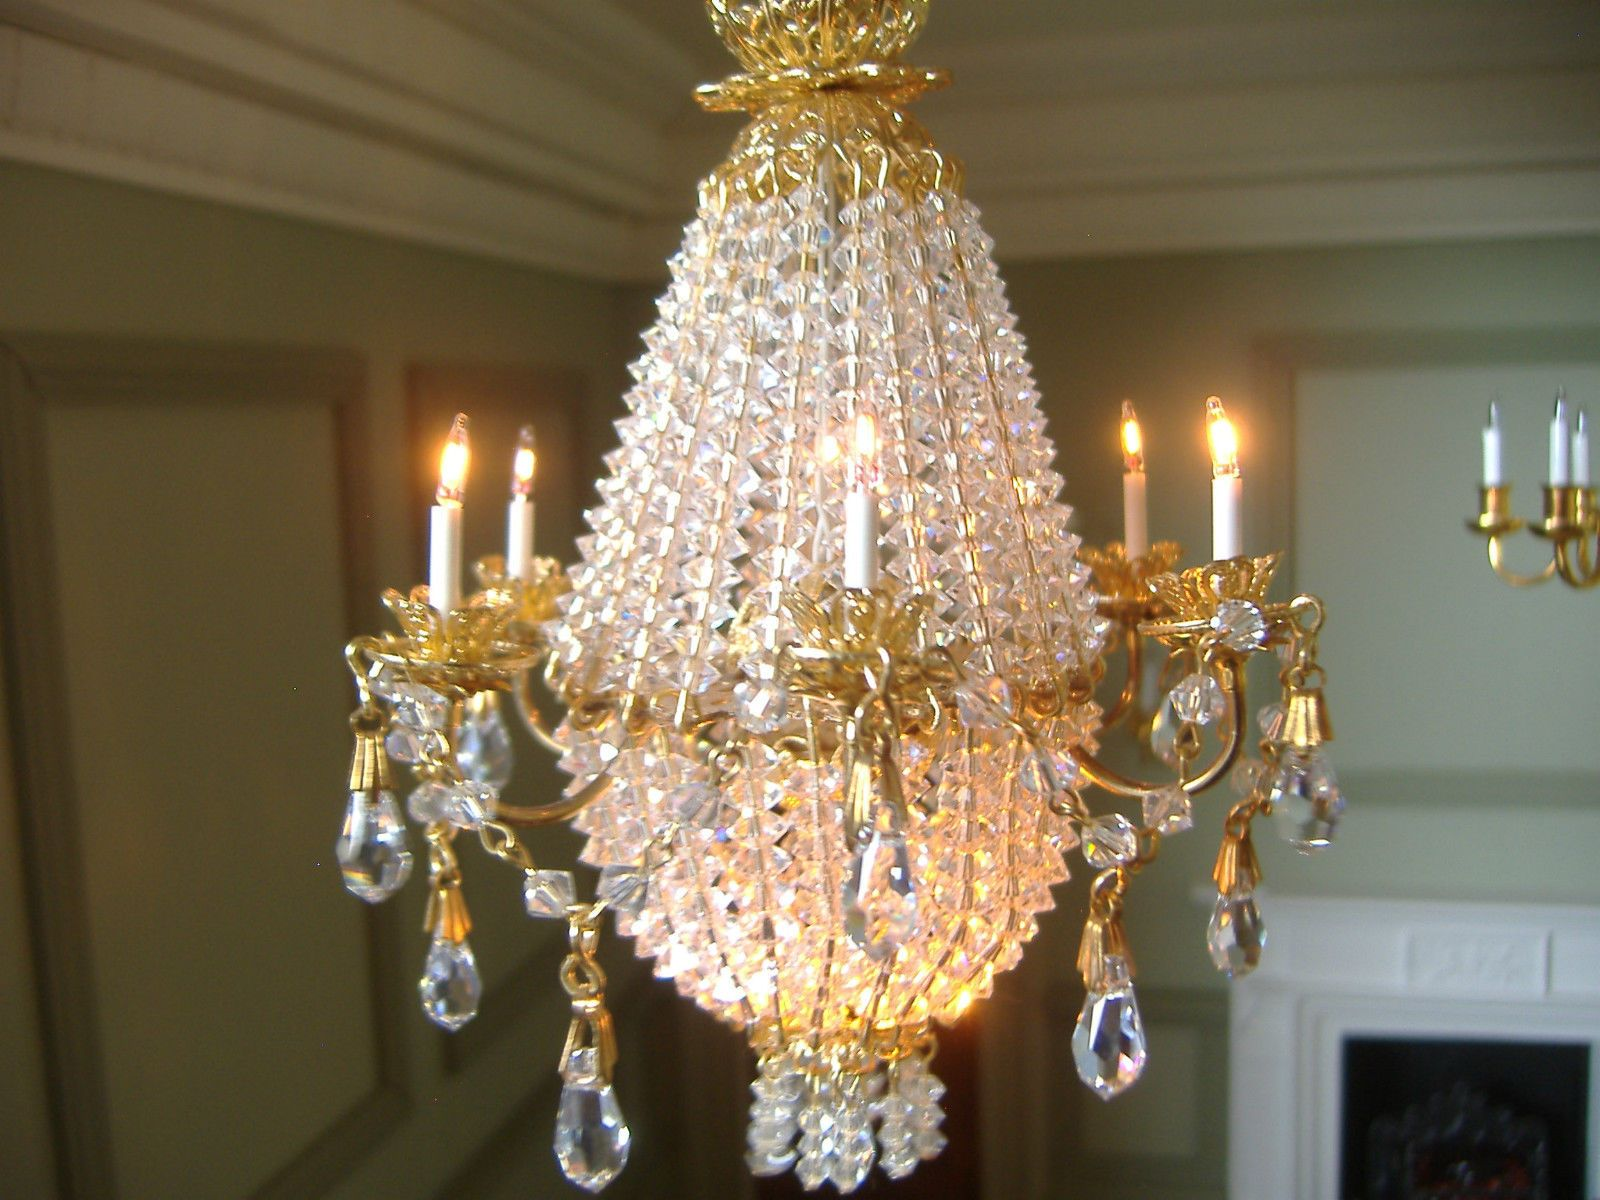 Rosemarie tombers rosels chandeliers 6 arm grand chandelier rosemarie tombers rosels chandeliers 6 arm grand chandelier arubaitofo Choice Image